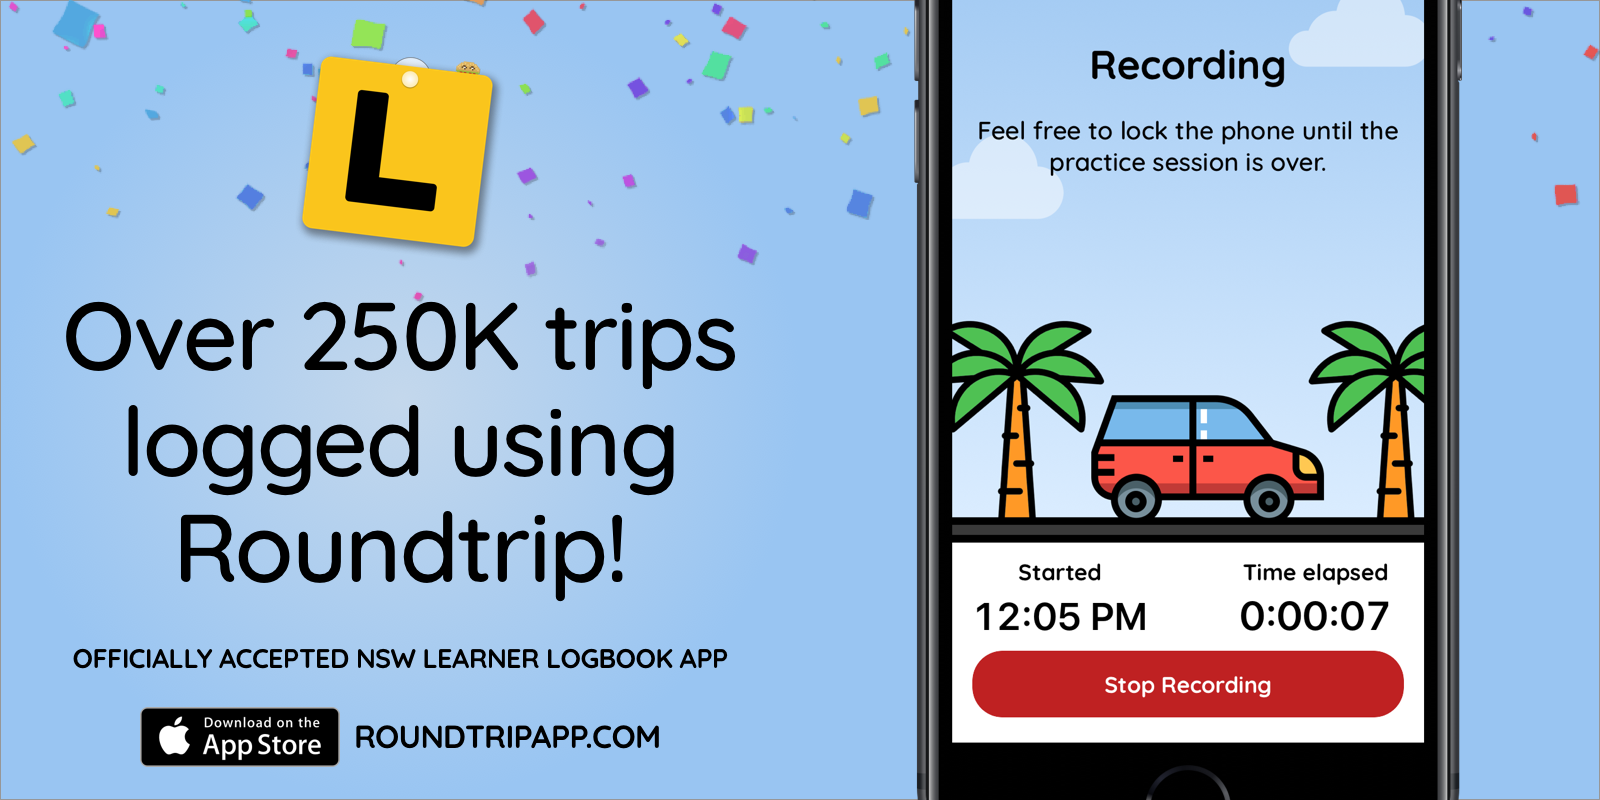 Over 250k trips logged